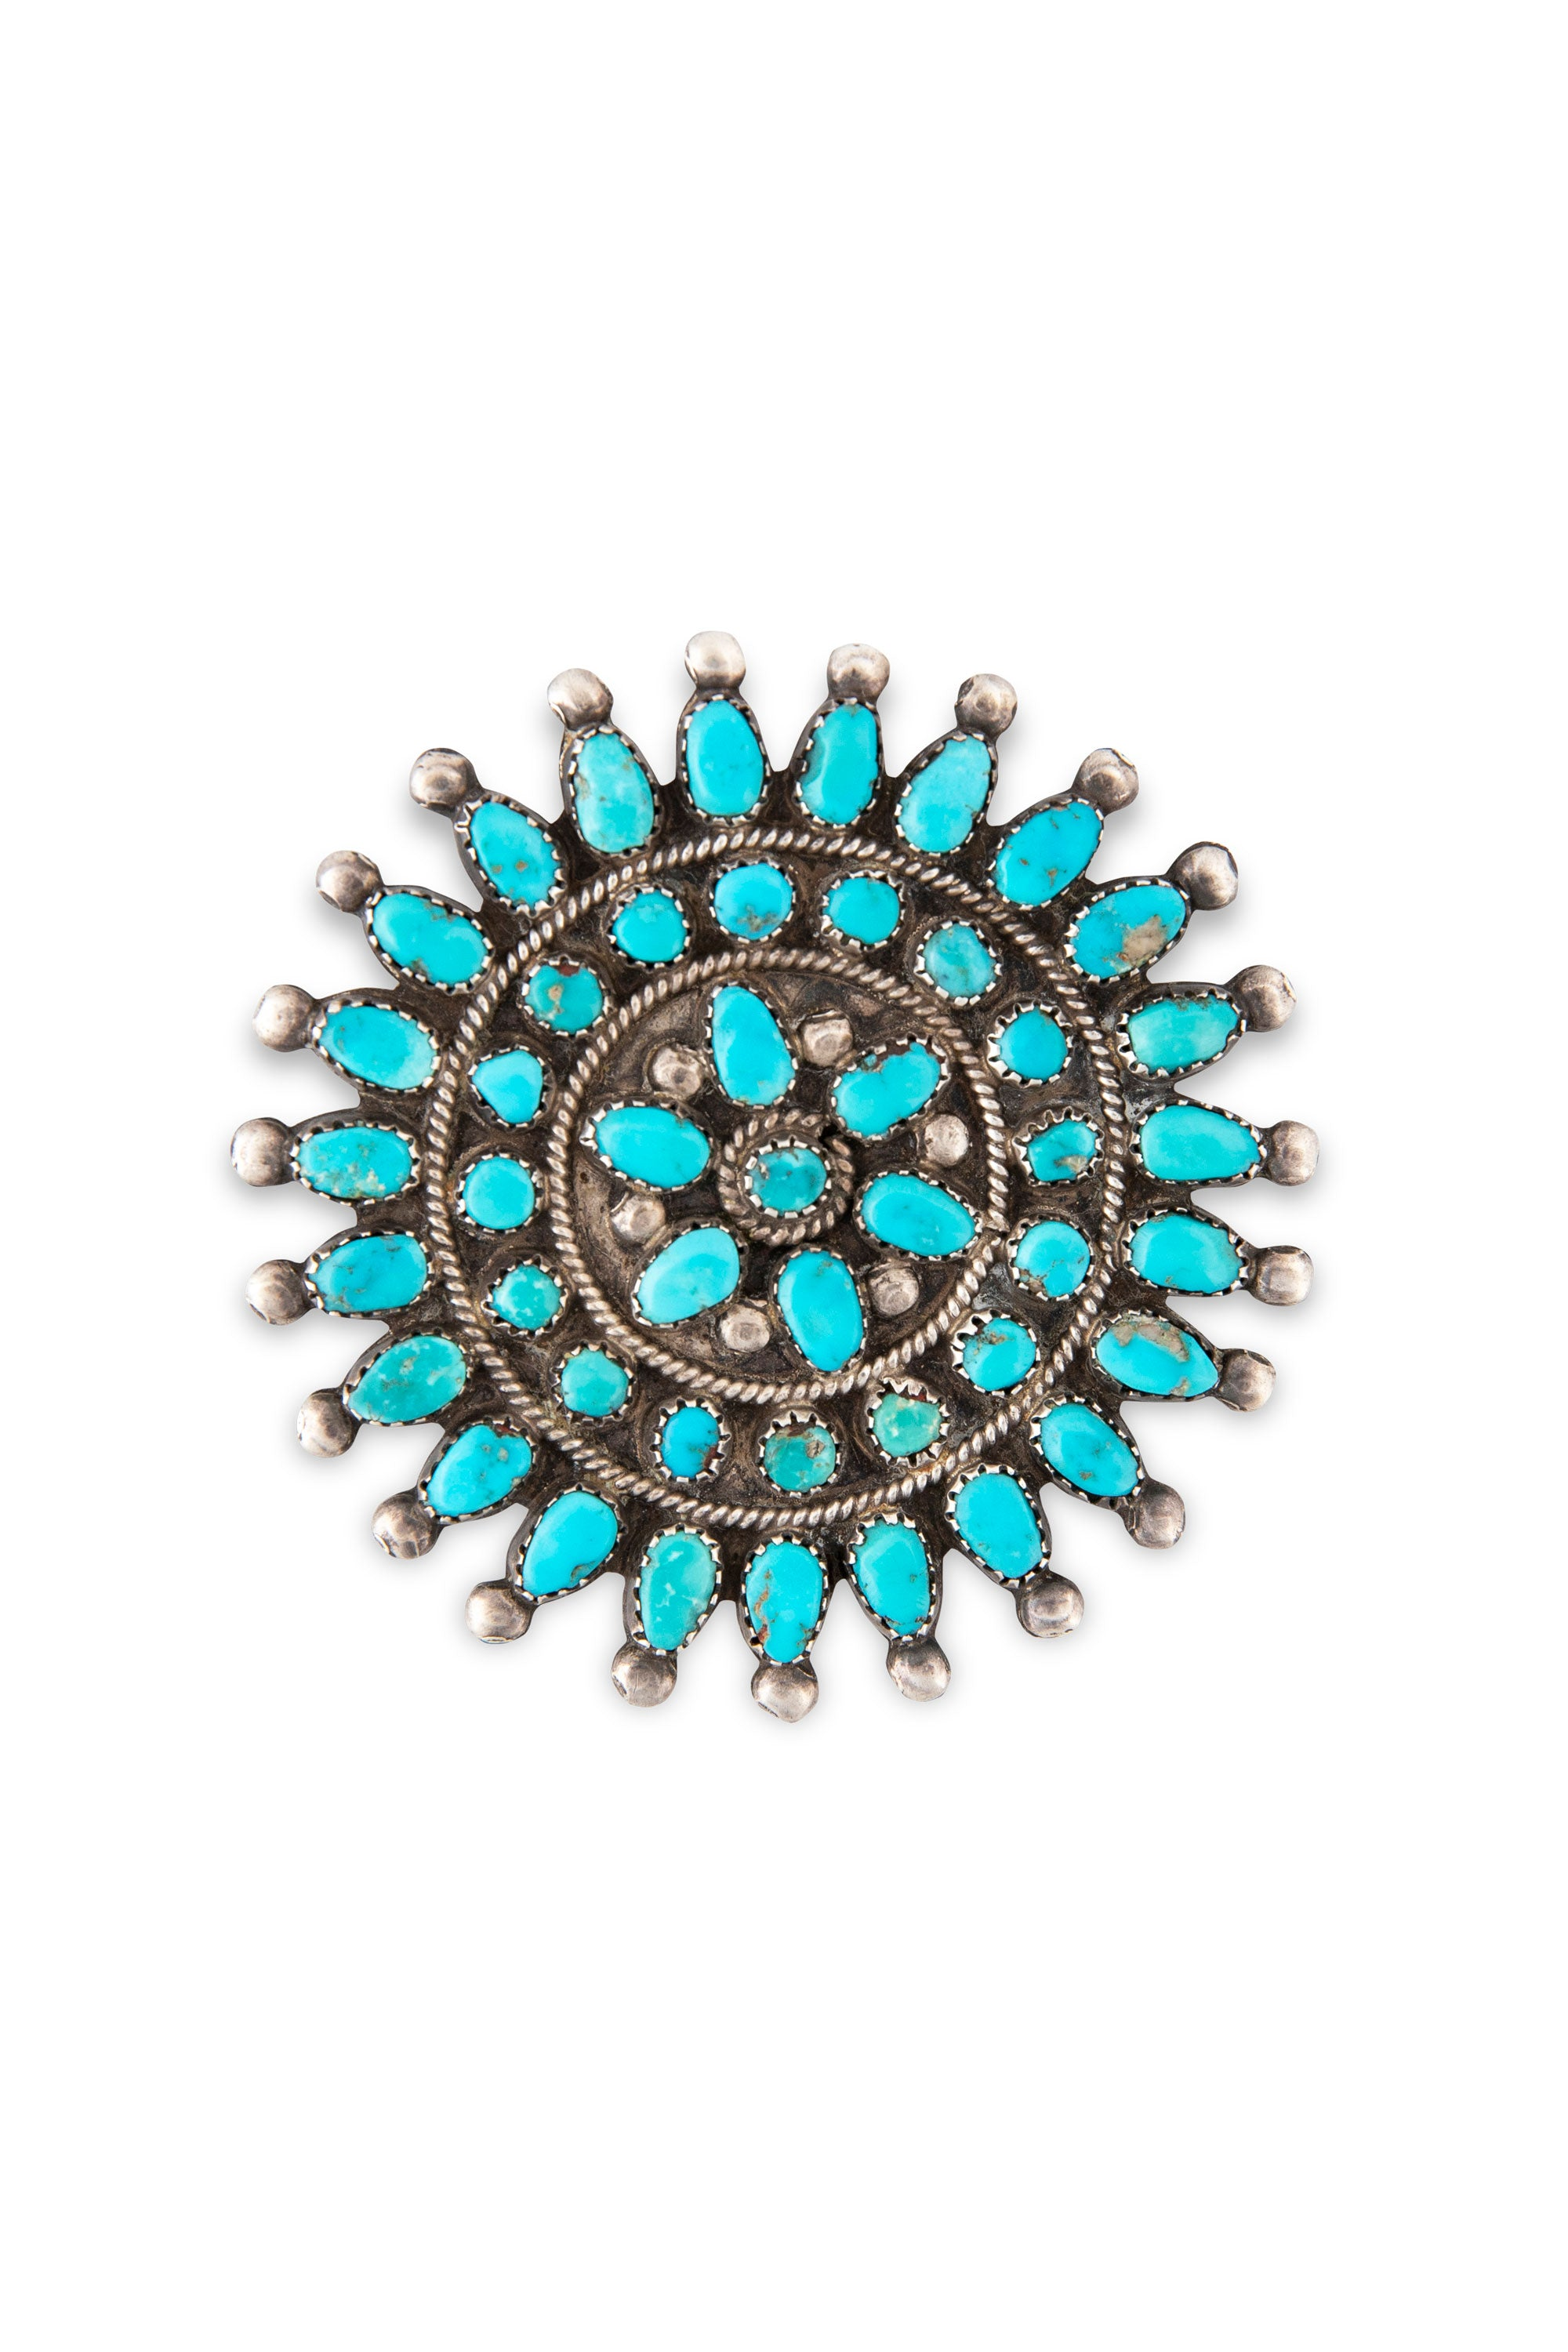 Pin, Cluster, Turquoise, Old Pawn, 257